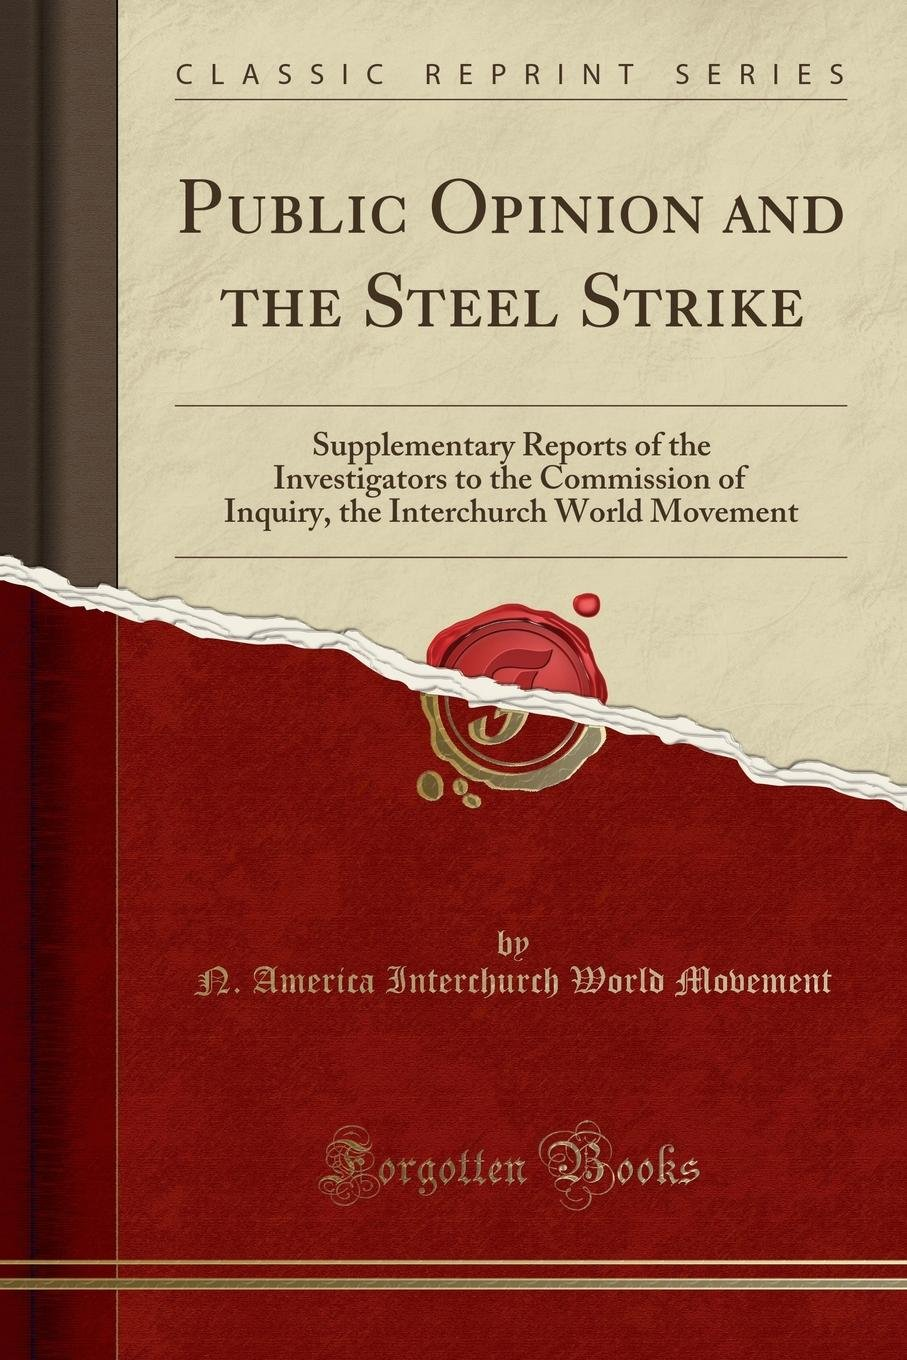 Public Opinion and the Steel Strike: Supplementary Reports of the Investigators to the Commission of Inquiry, the Interchurch World Movement (Classic Reprint)